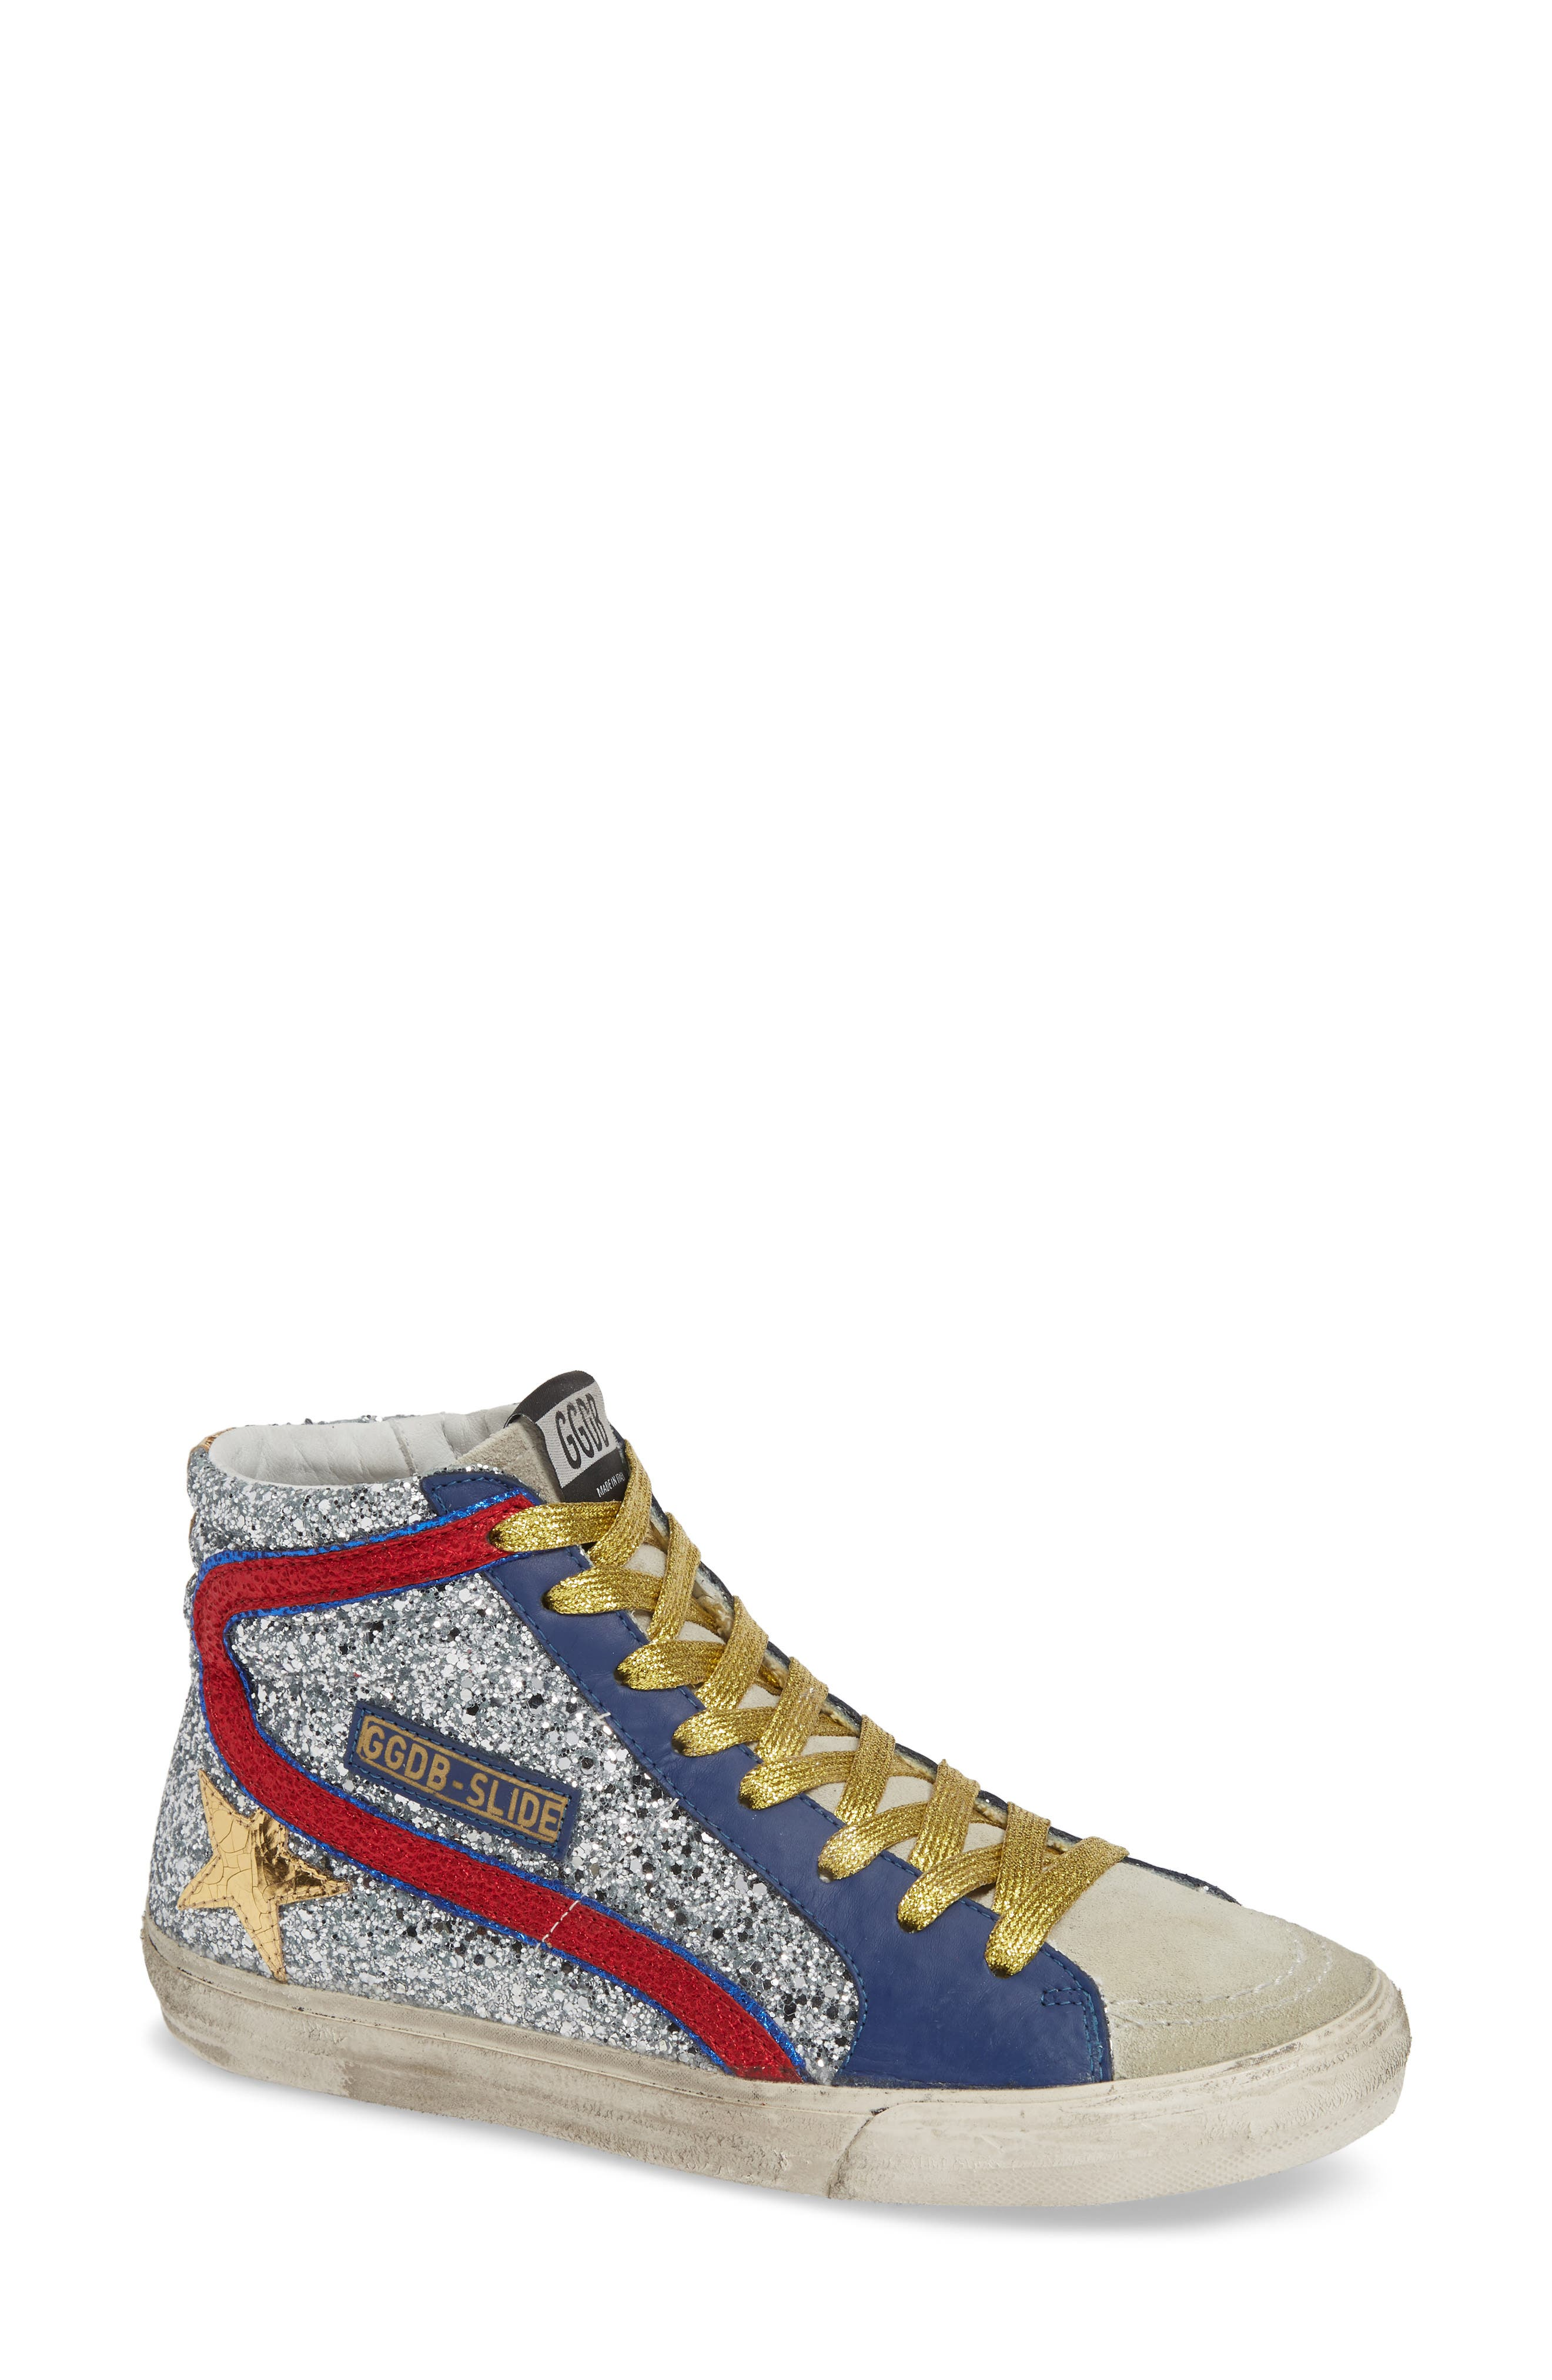 Slide Glitter High Top Sneaker, Main, color, SILVER/ RED/ GOLD